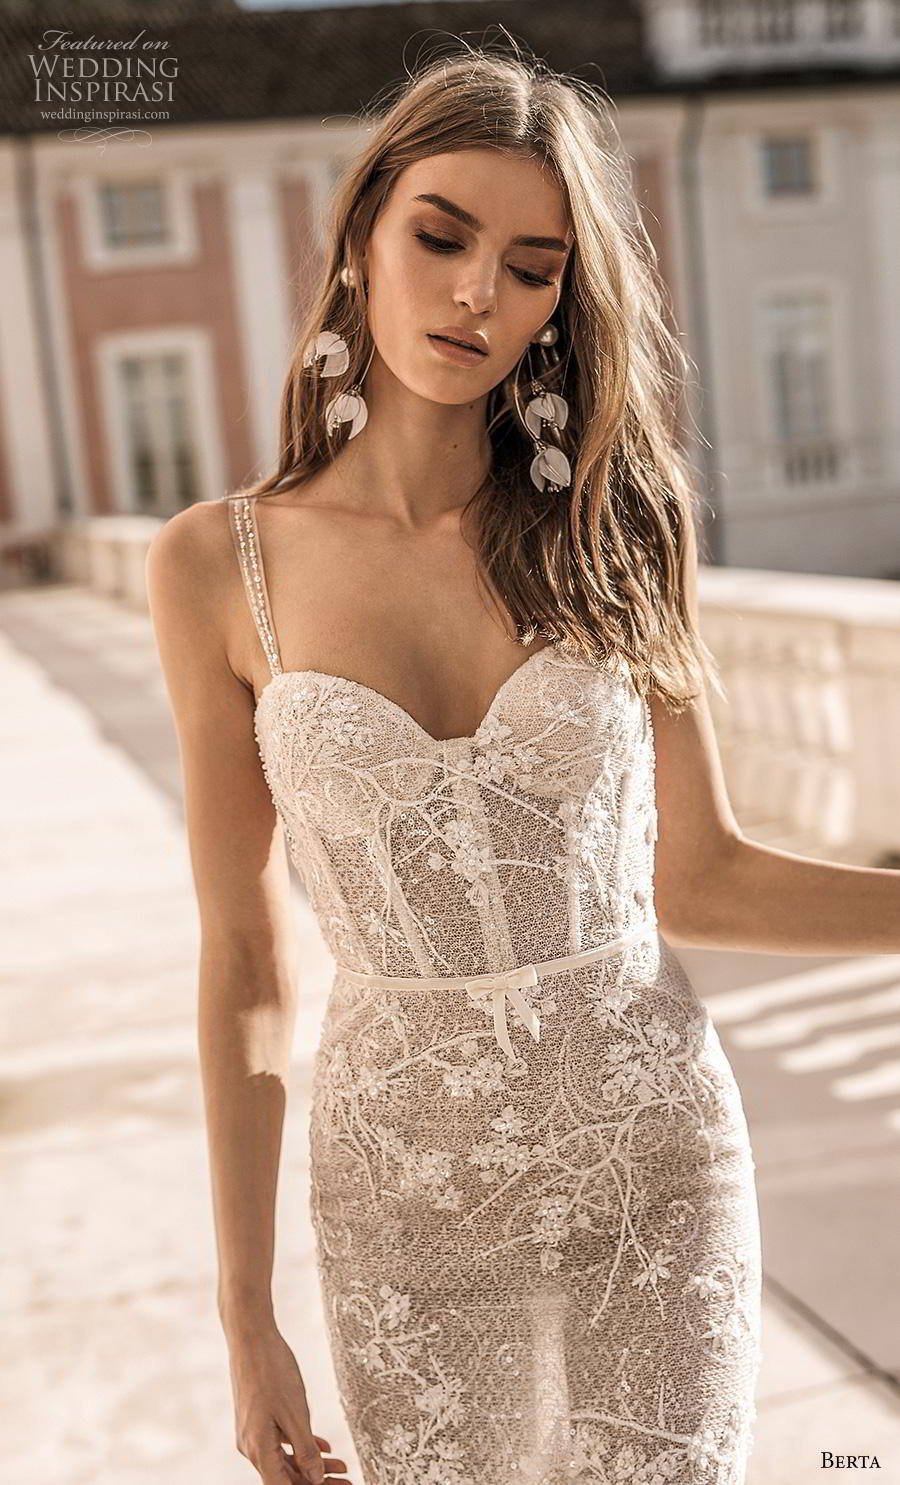 berta 2019 privee bridal thin strap sweetheart neckline heavily embellished bodice bustier sexy romantic mermaid wedding dress low open back backless chapel train (2) zv